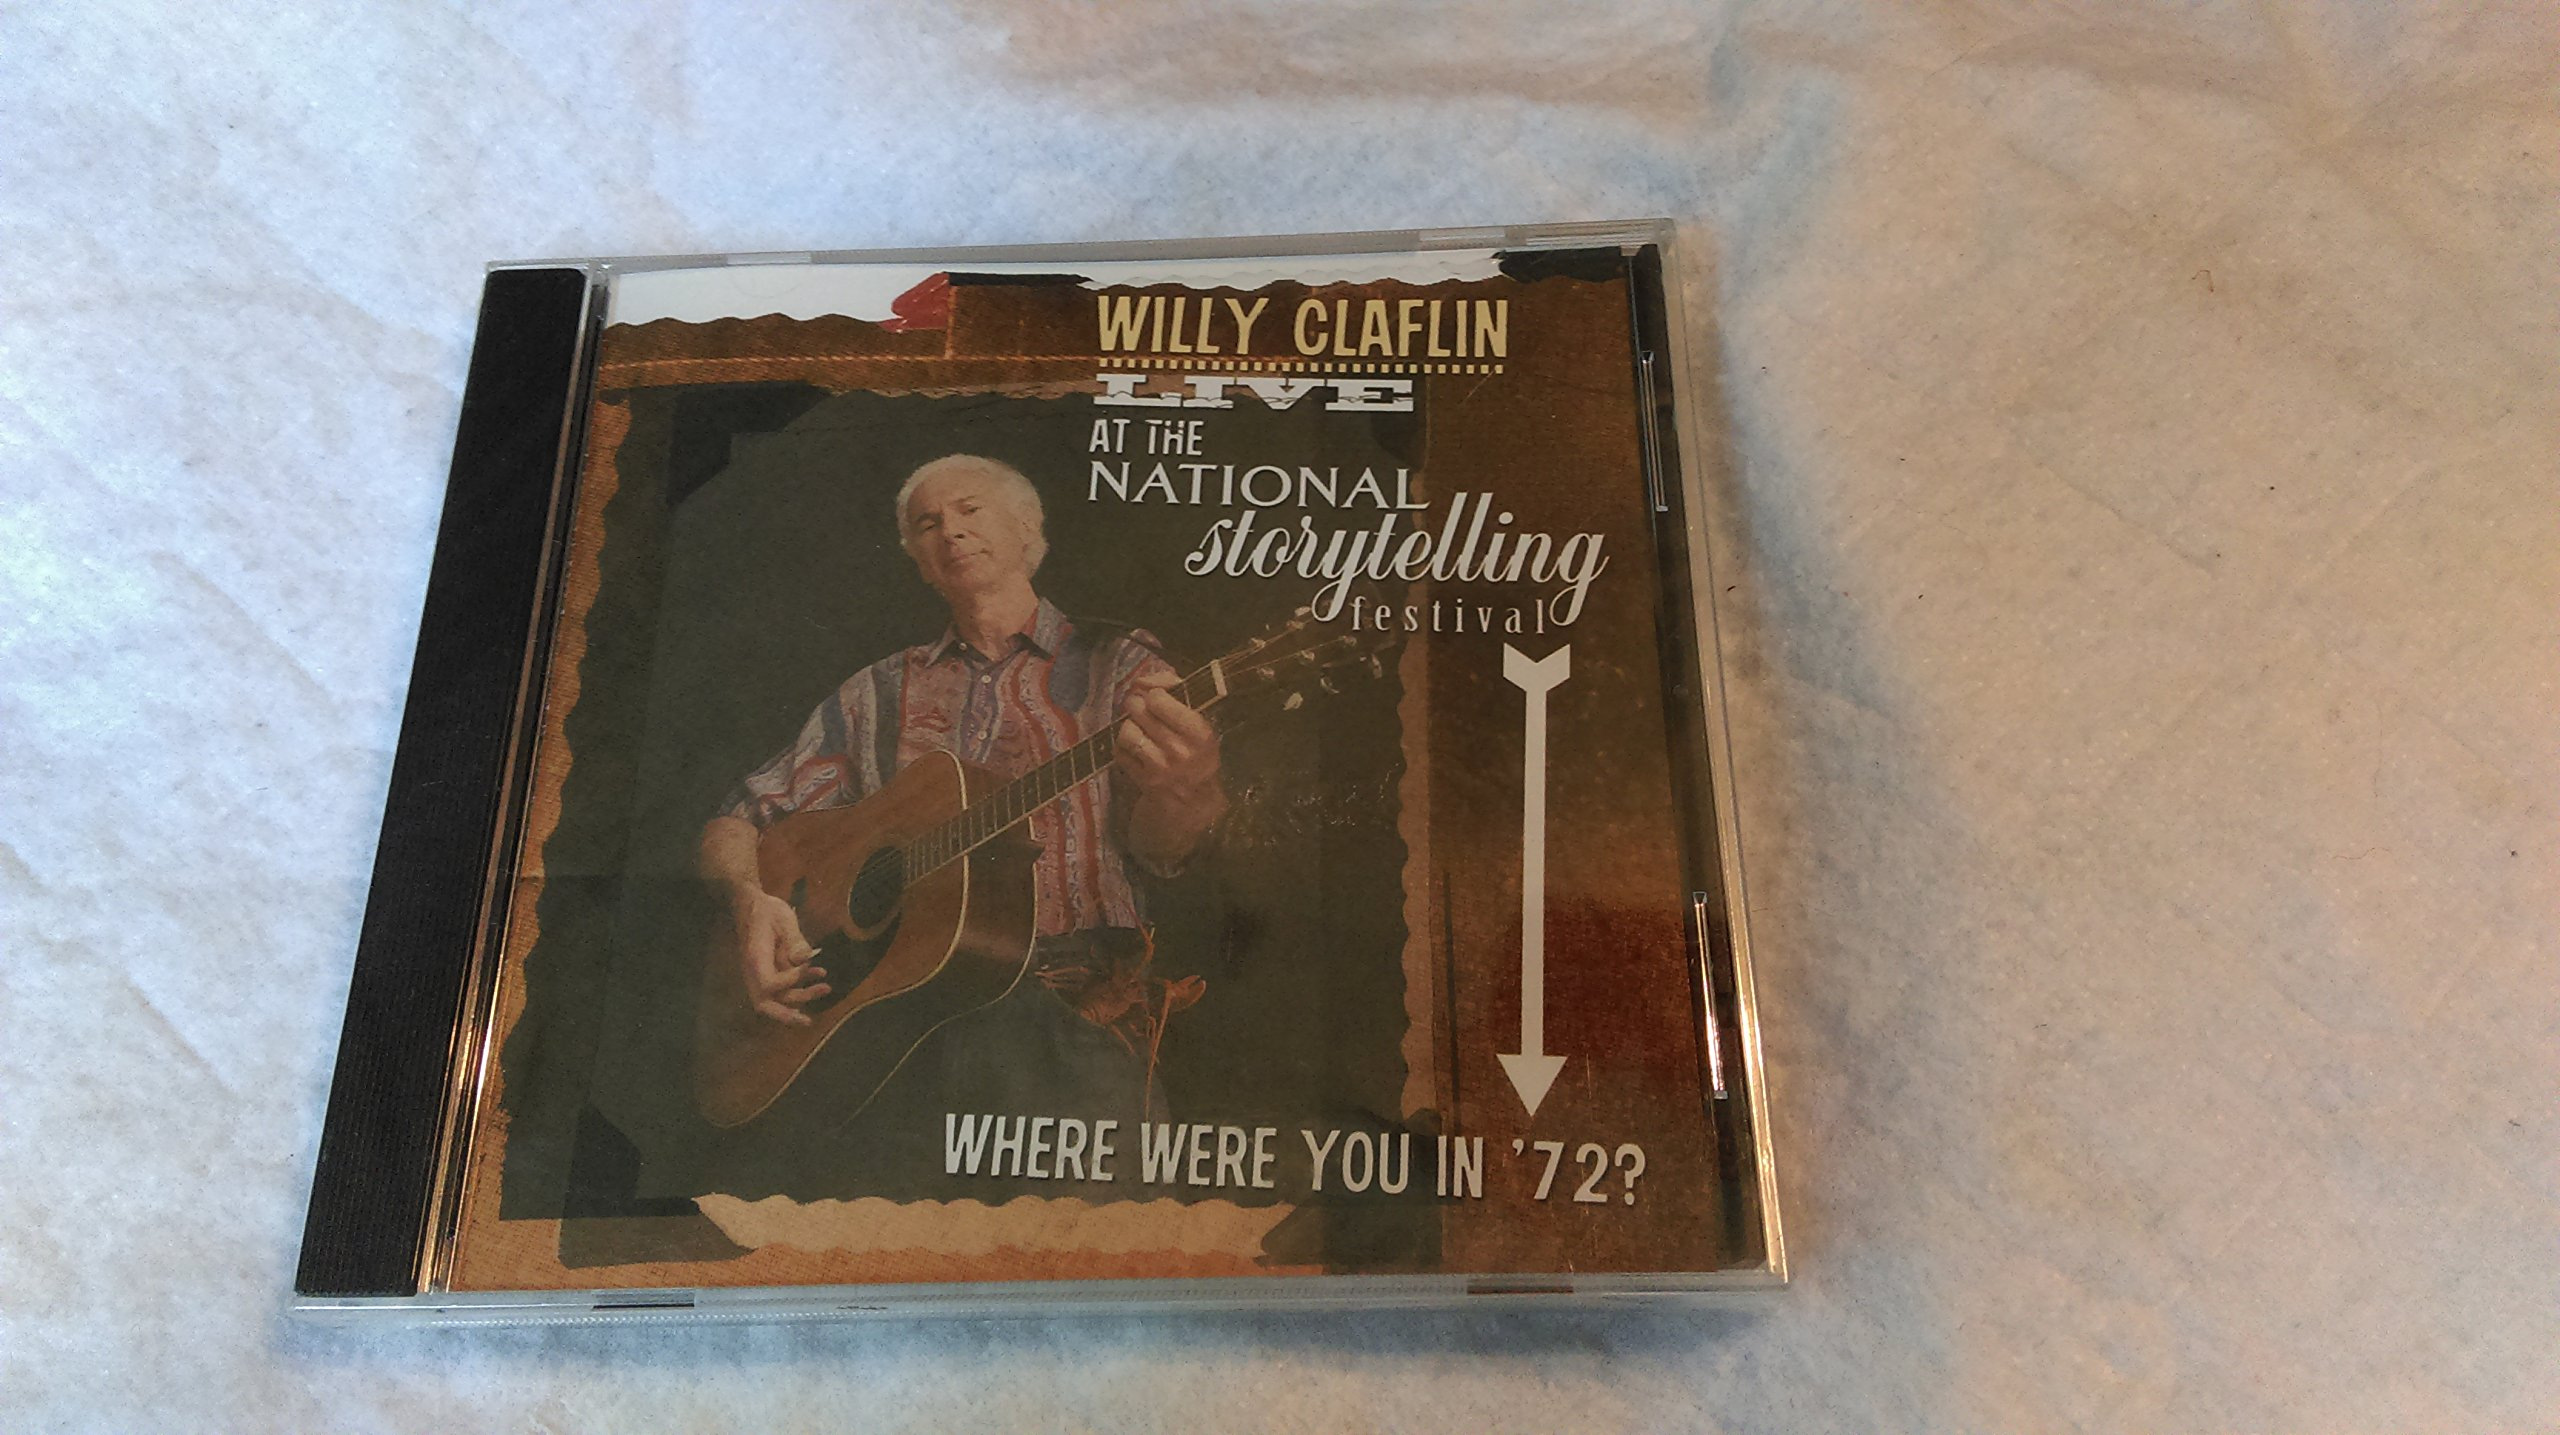 Willy Claflin LIVE at the National Storytelling Festival. Where were you in '72?